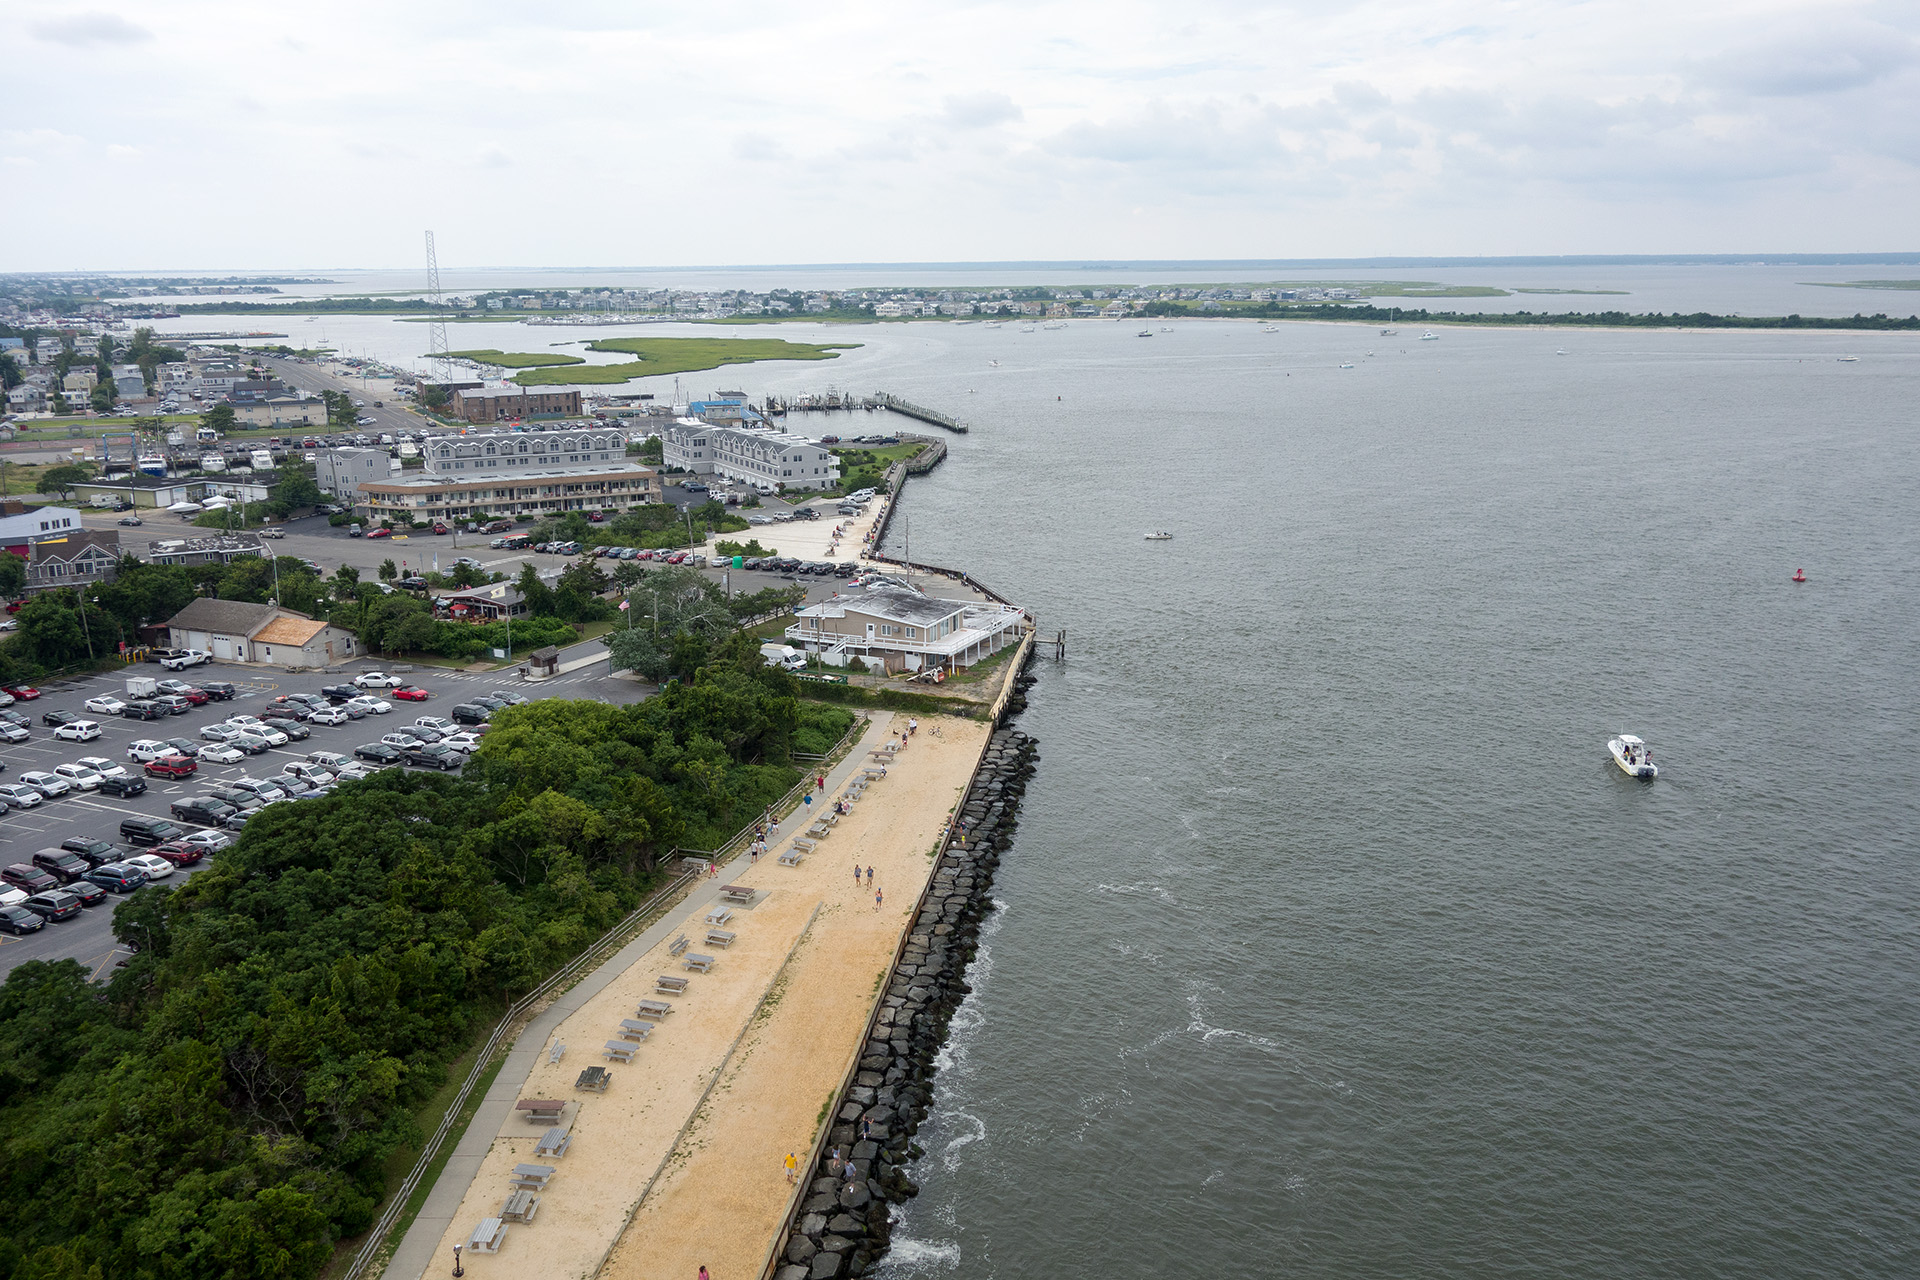 The view from the top of the Barnegat Lighthouse.